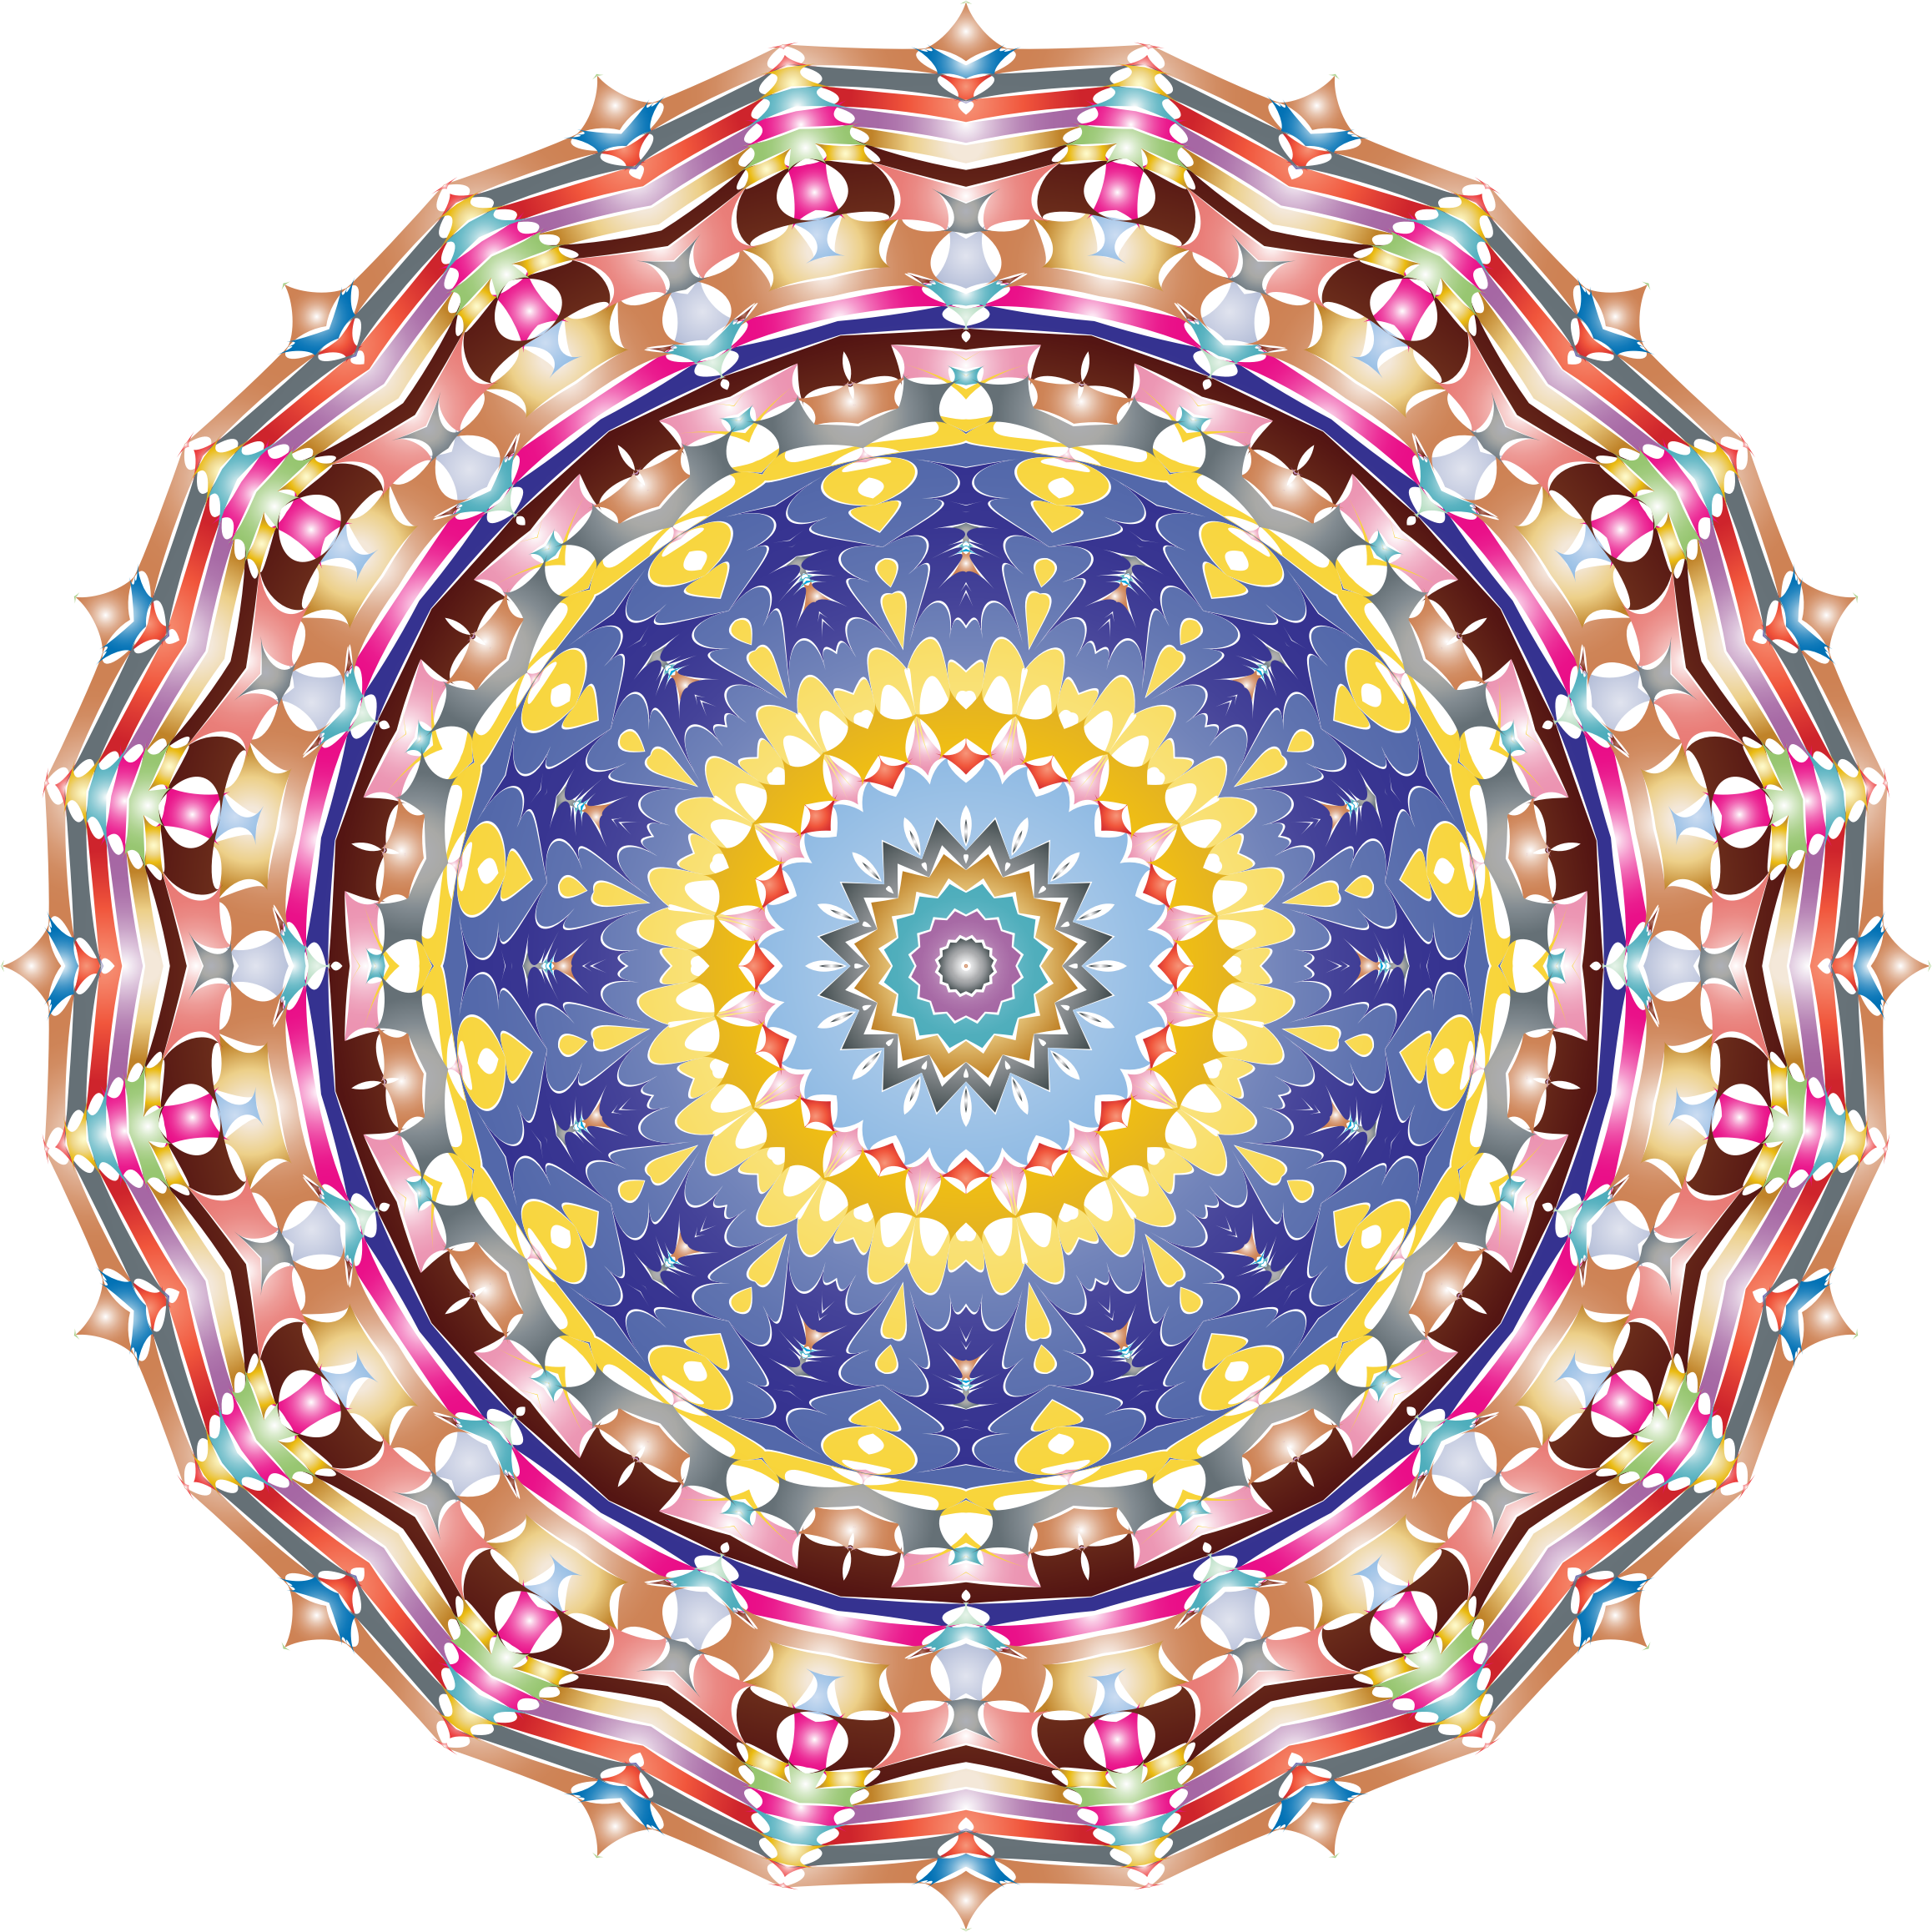 Kaleidoscopic Mandala 3 No Backgorund by GDJ